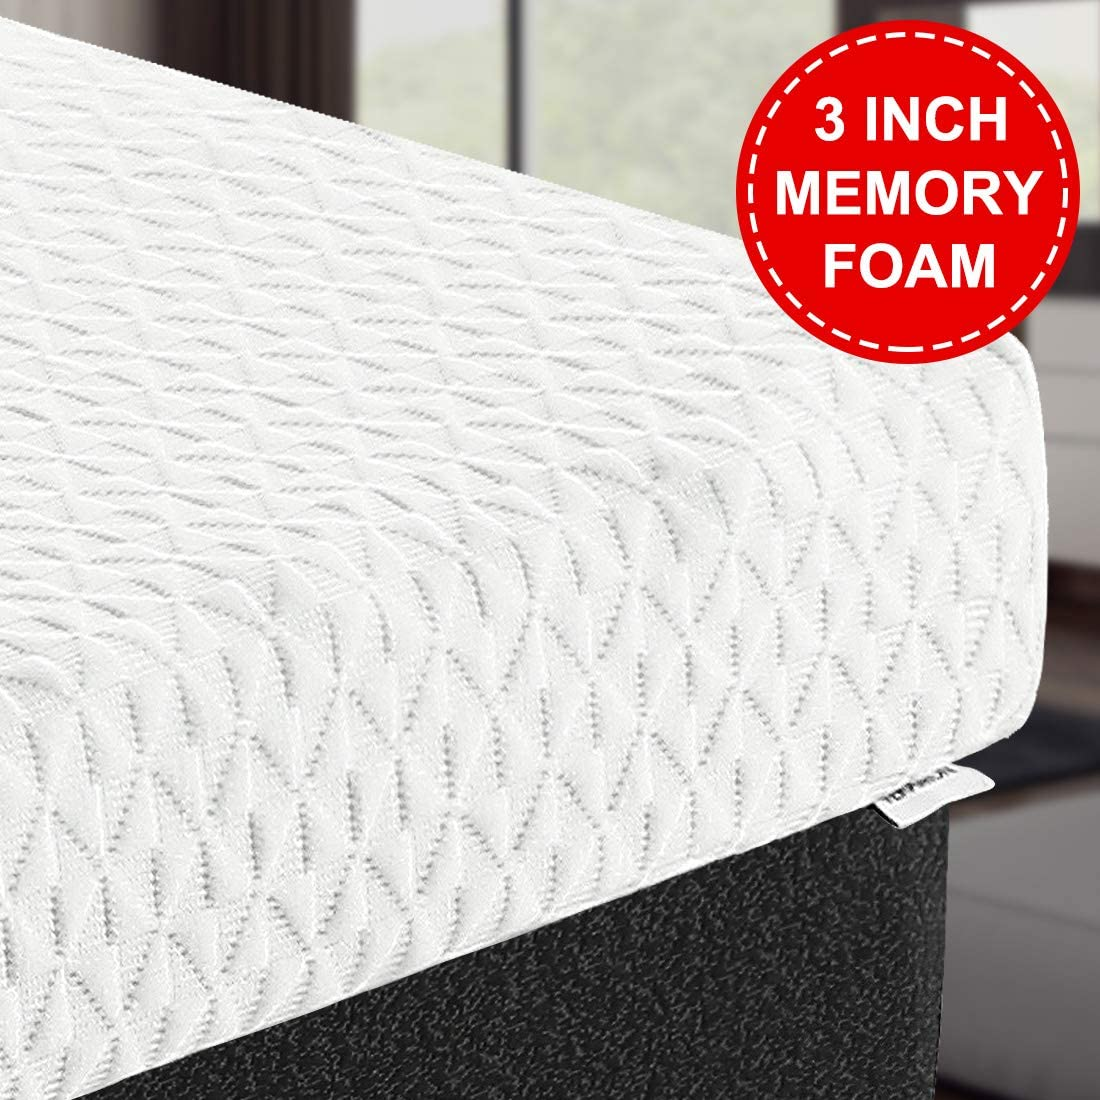 TEKAMON 3 Inch 7-Zone Cool Gel Memory Foam Mattress Topper,Relieves Pressure Points,with Removable Hypoallergenic & Washable Cooling Bamboo Cover - Twin XL